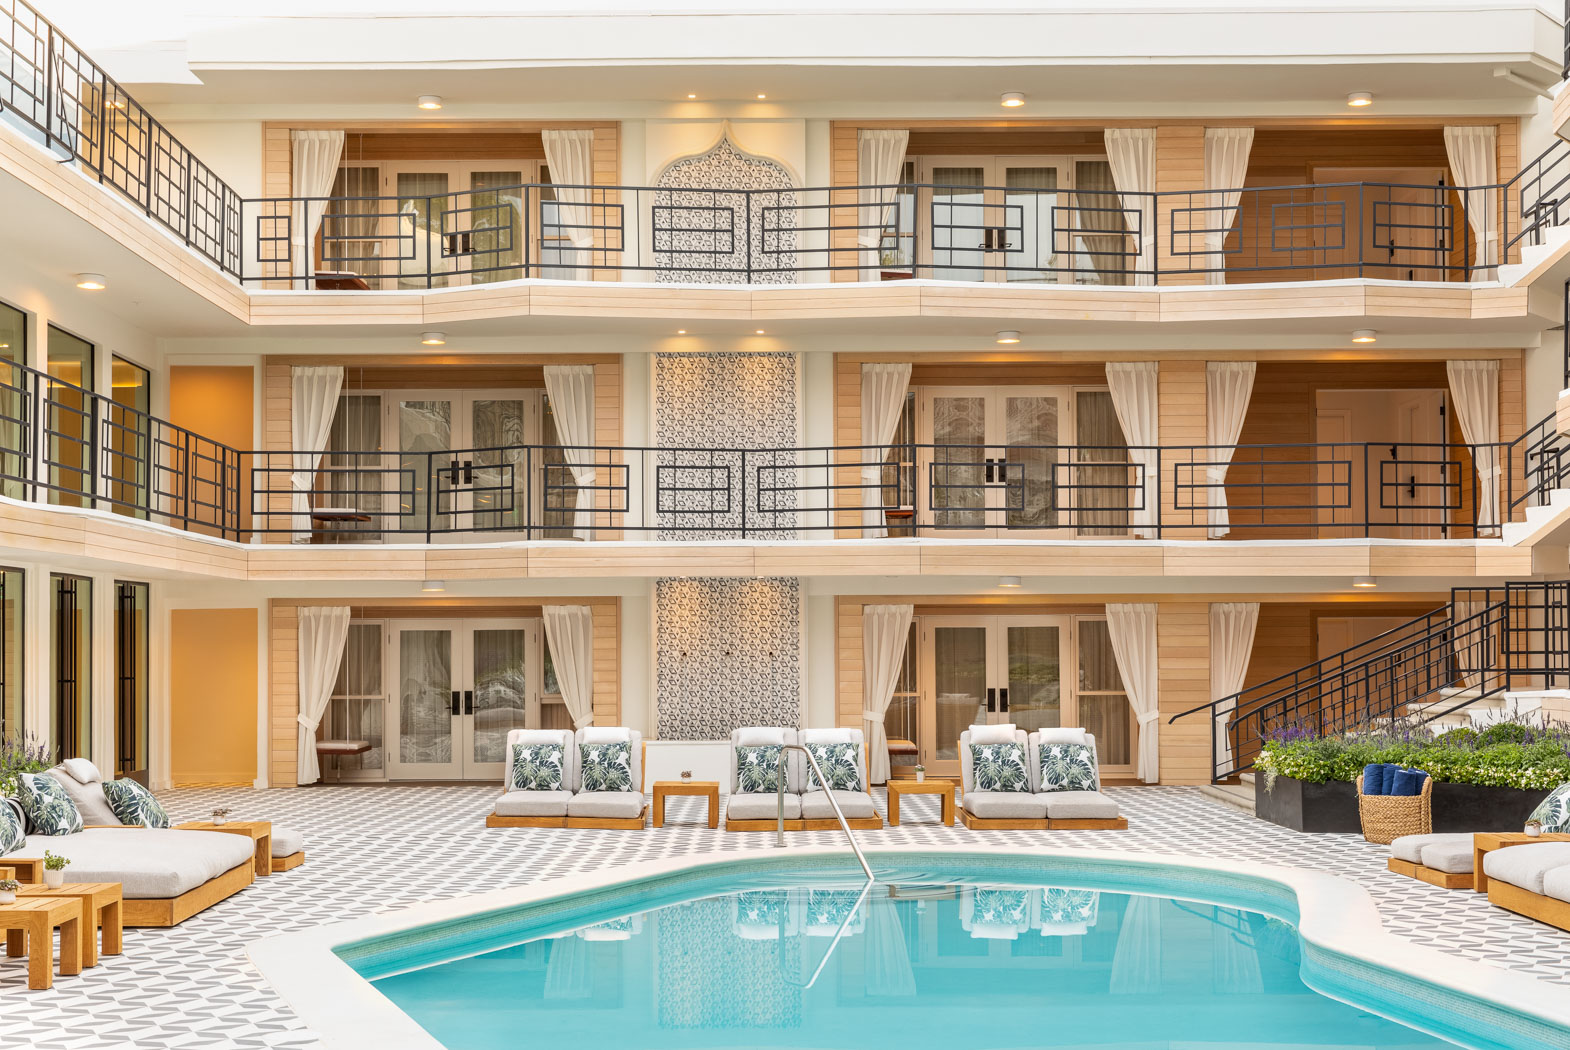 a view of the rooms from the pool area